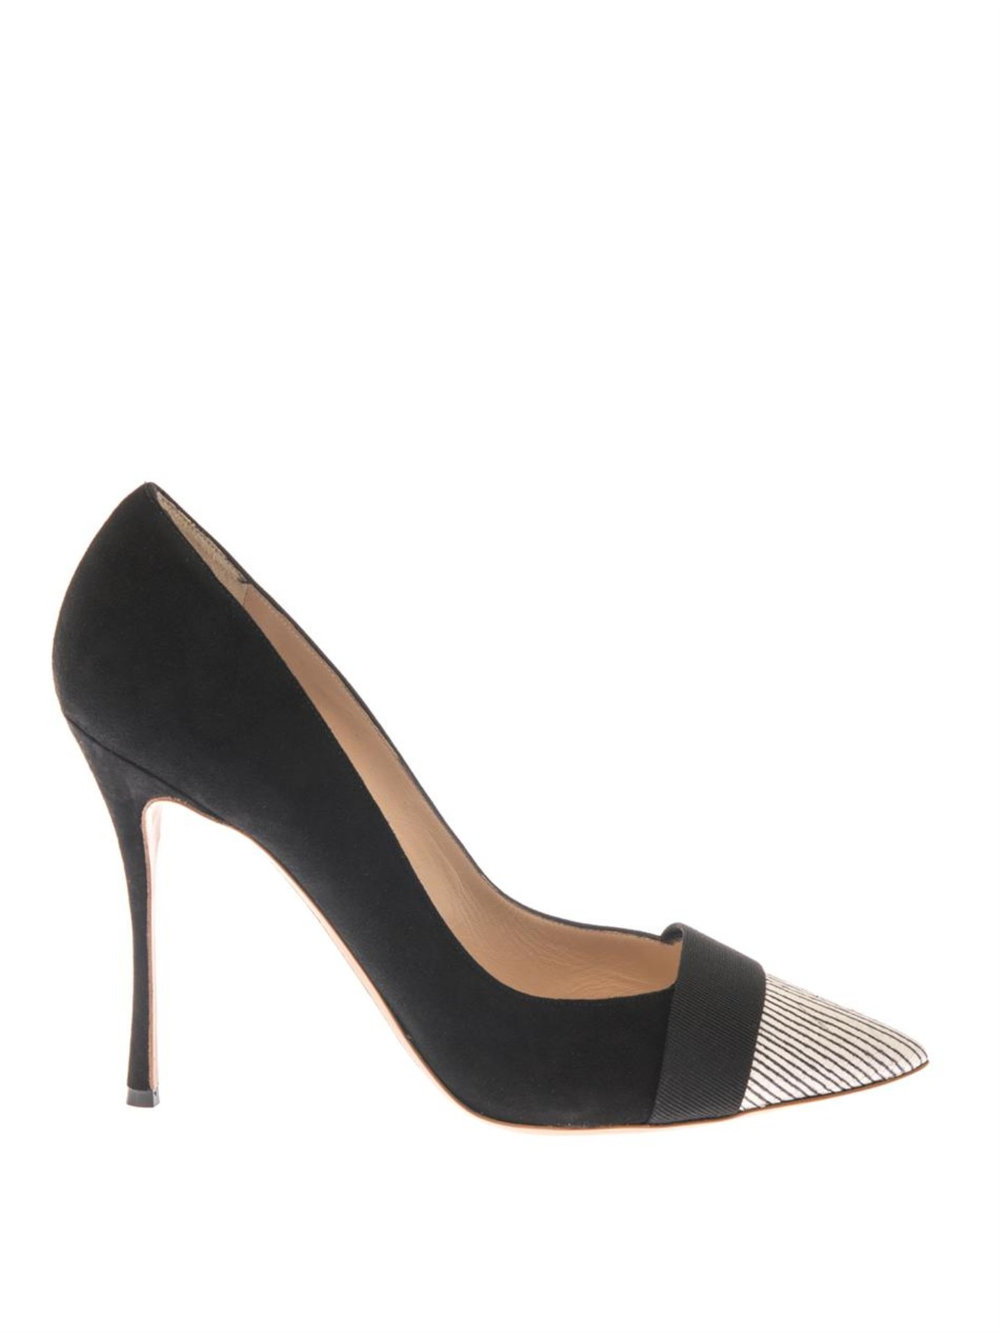 nicholas-kirkwood-black-white-suede-and-snakeskin-point-toe-pumps-black-product-4-811670623-normal.jpeg